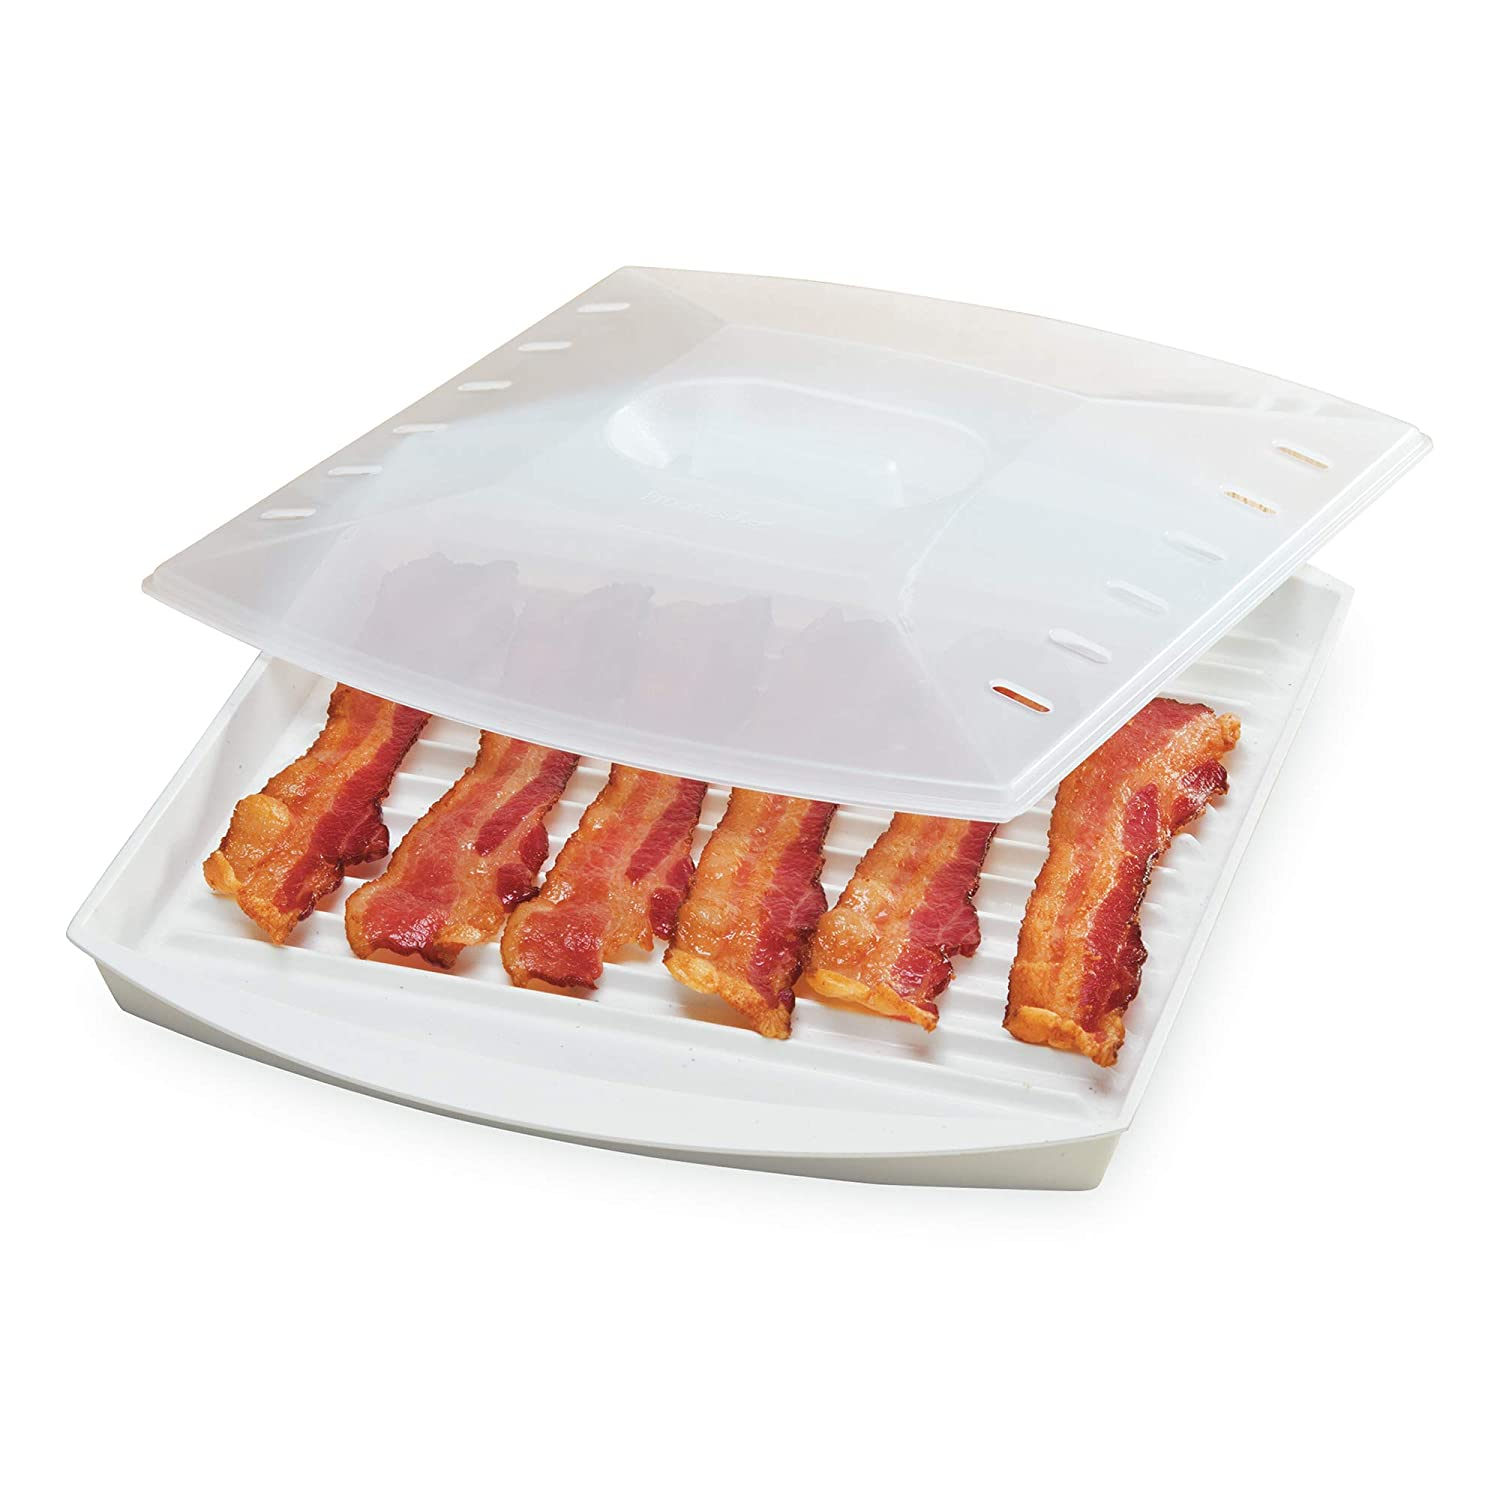 "Prep Solutions by Progressive Microwave Large Bacon Grill with Vented Cover, 4-6 Strips of Bacon, Cook Frozen Snacks, Measures 12""L x 10""W x 2.25""H"